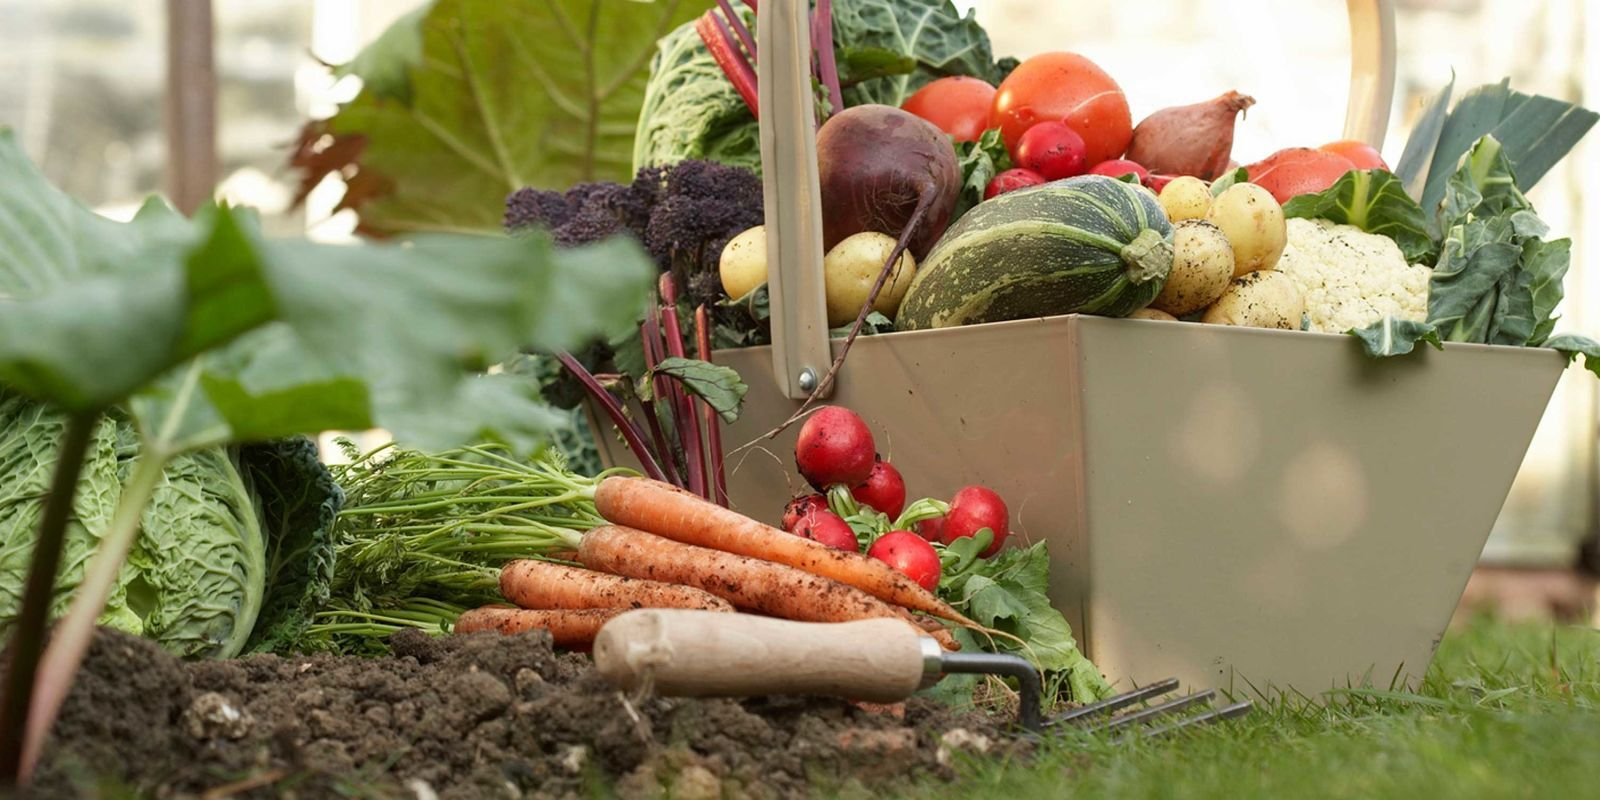 It's not too late to plant veggies for autumn harvests.